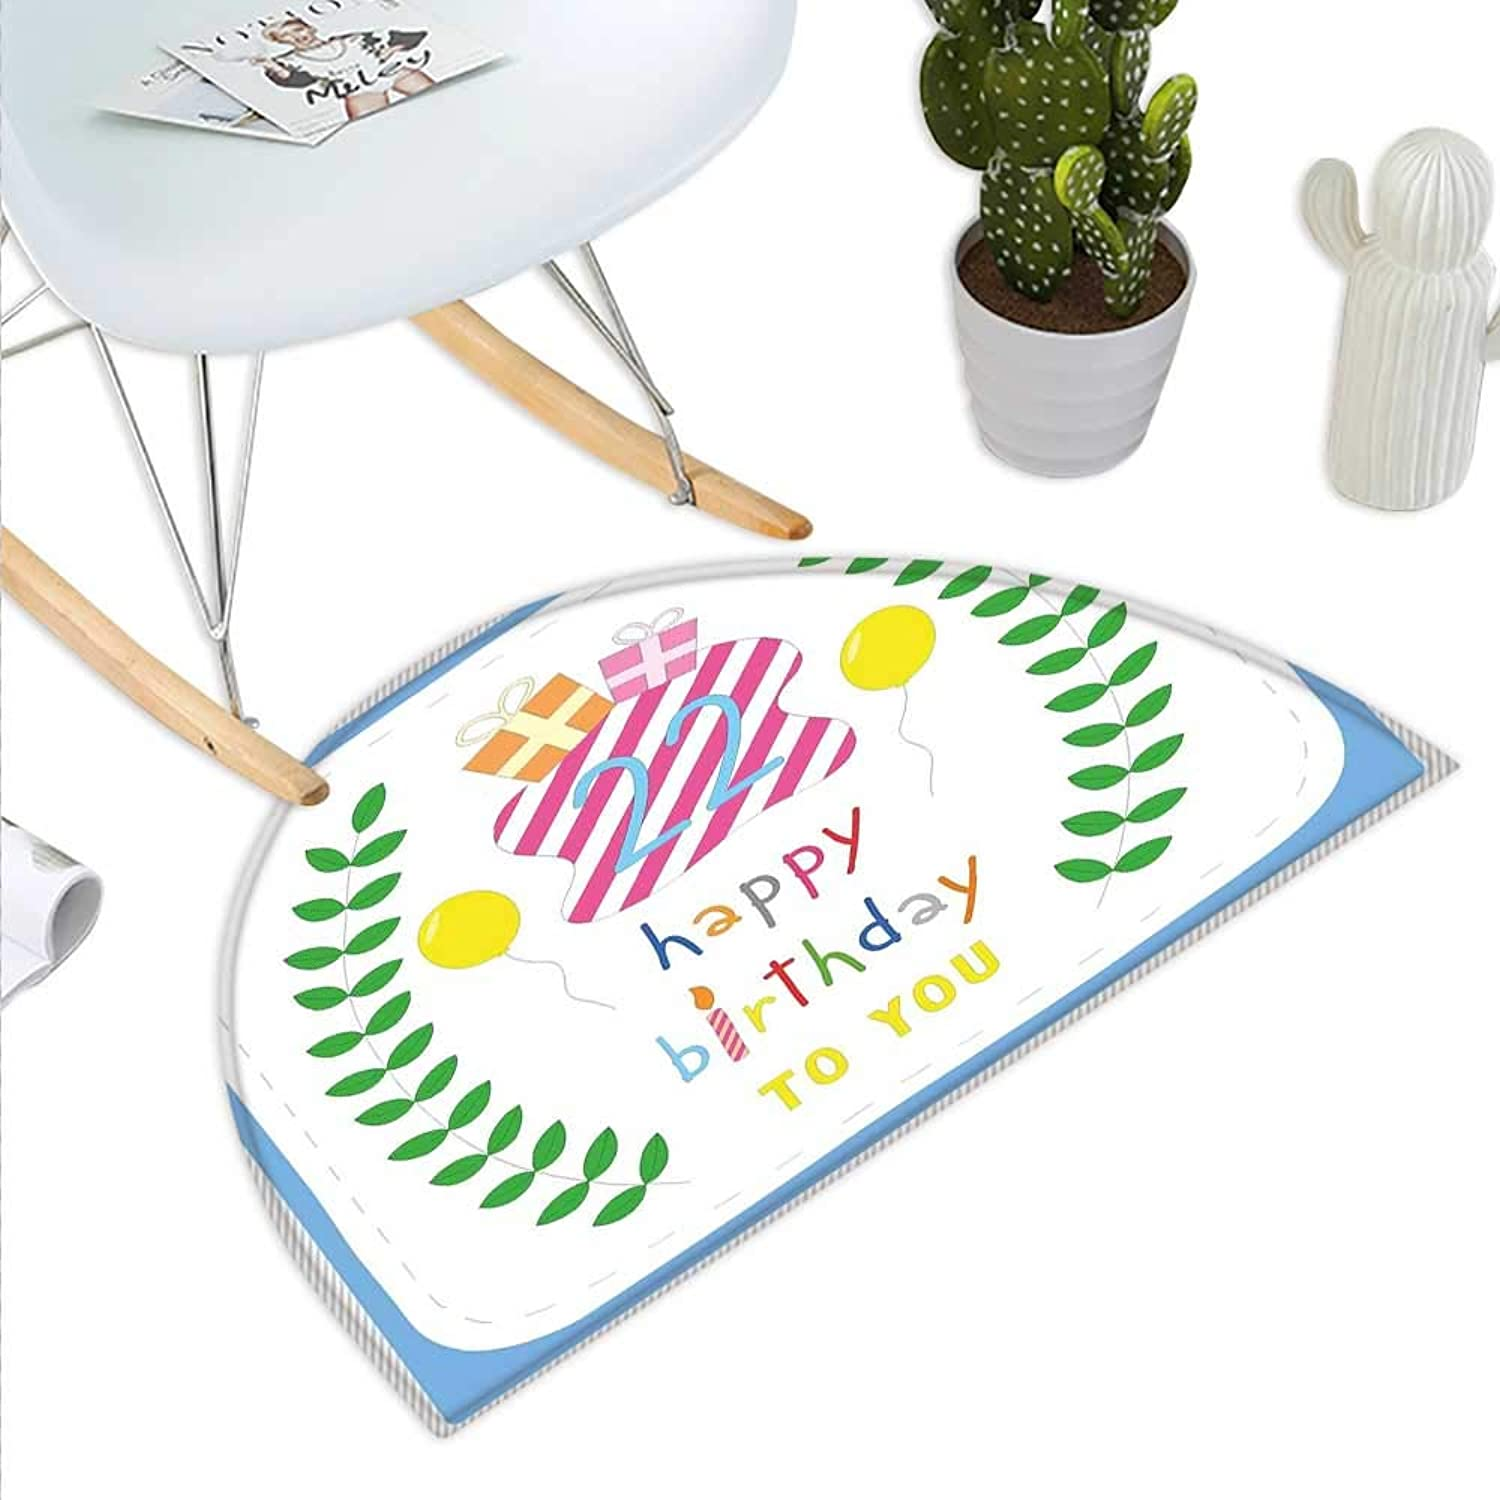 22nd Birthday Semicircle Doormat Anniversary Kids Girls Party with Leaves and Presents Balloon Party Design Halfmoon doormats H 39.3  xD 59  Multicolor